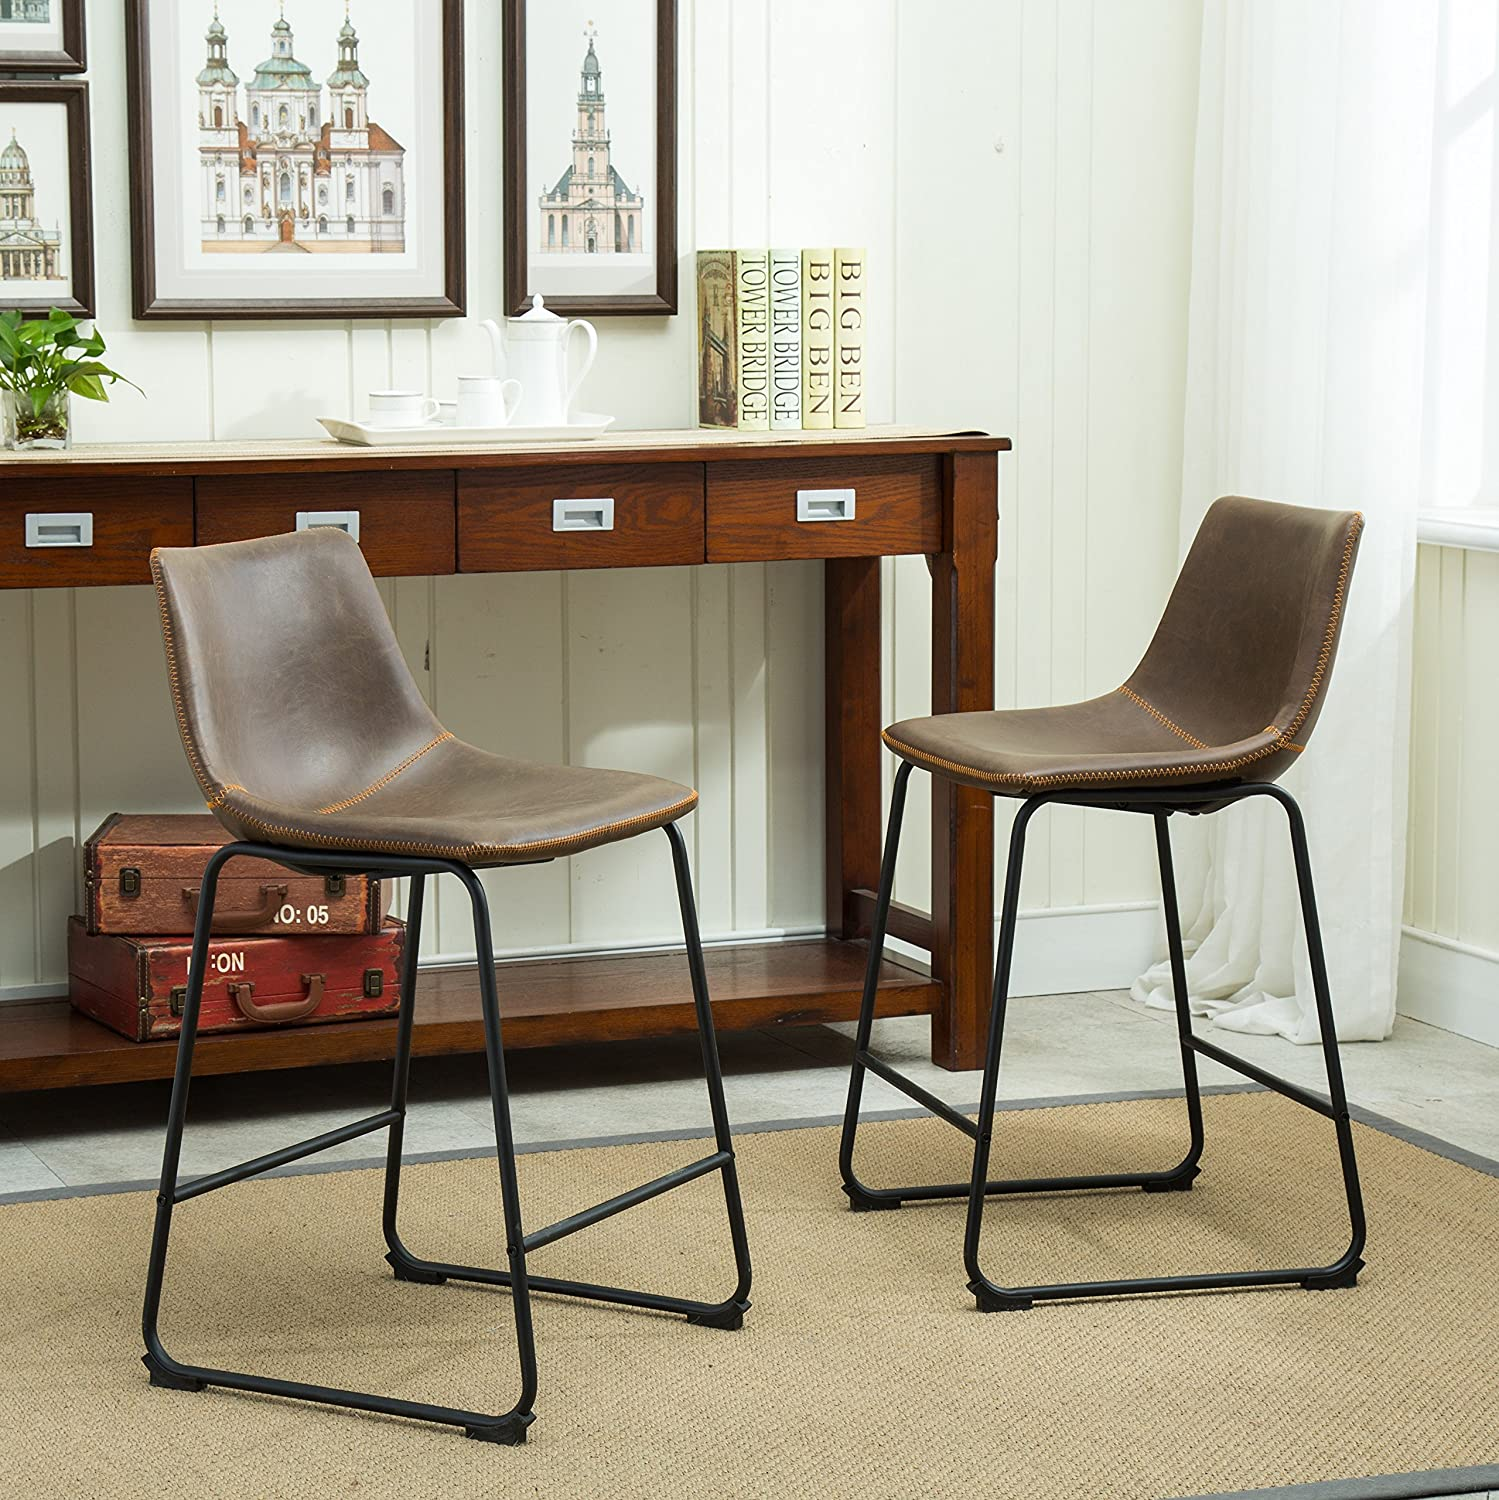 Amazon.com: Roundhill Furniture Lotusville Vintage PU Leather Counter  Height Stools, Antique Brown, Set of 2: Kitchen & Dining - Amazon.com: Roundhill Furniture Lotusville Vintage PU Leather